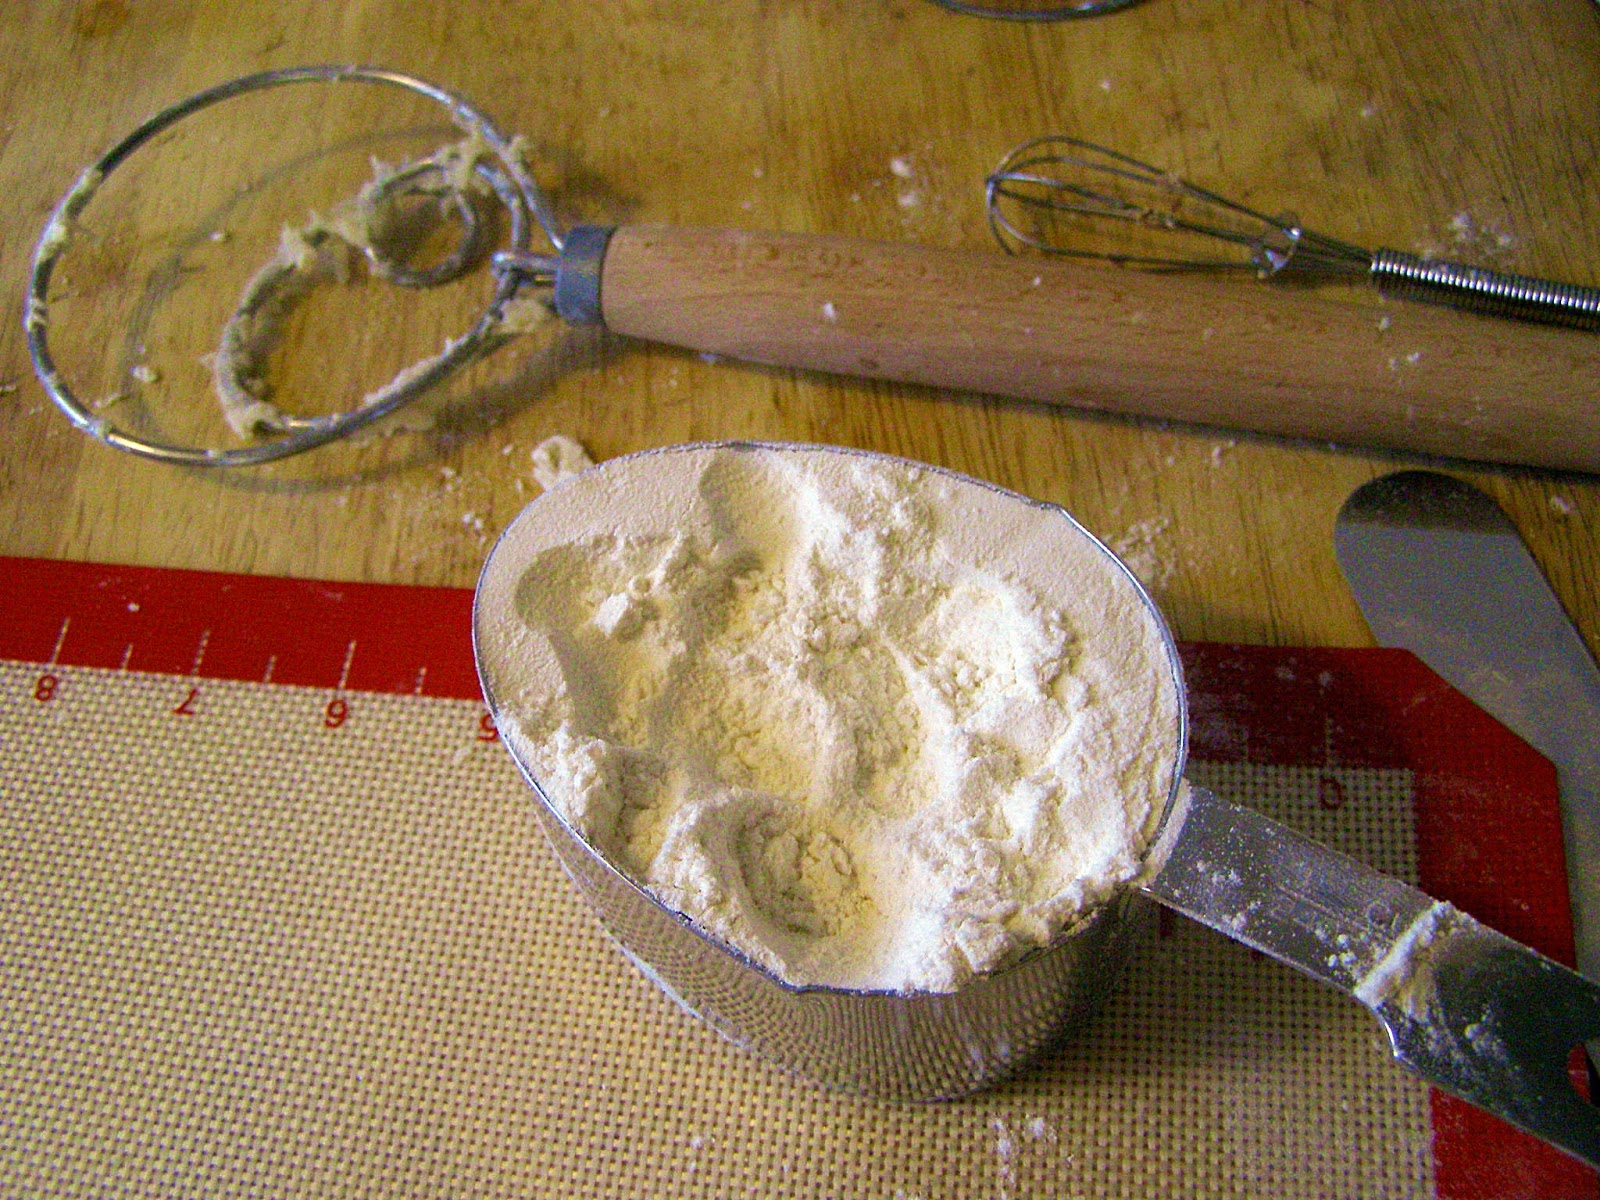 Flour after kneading